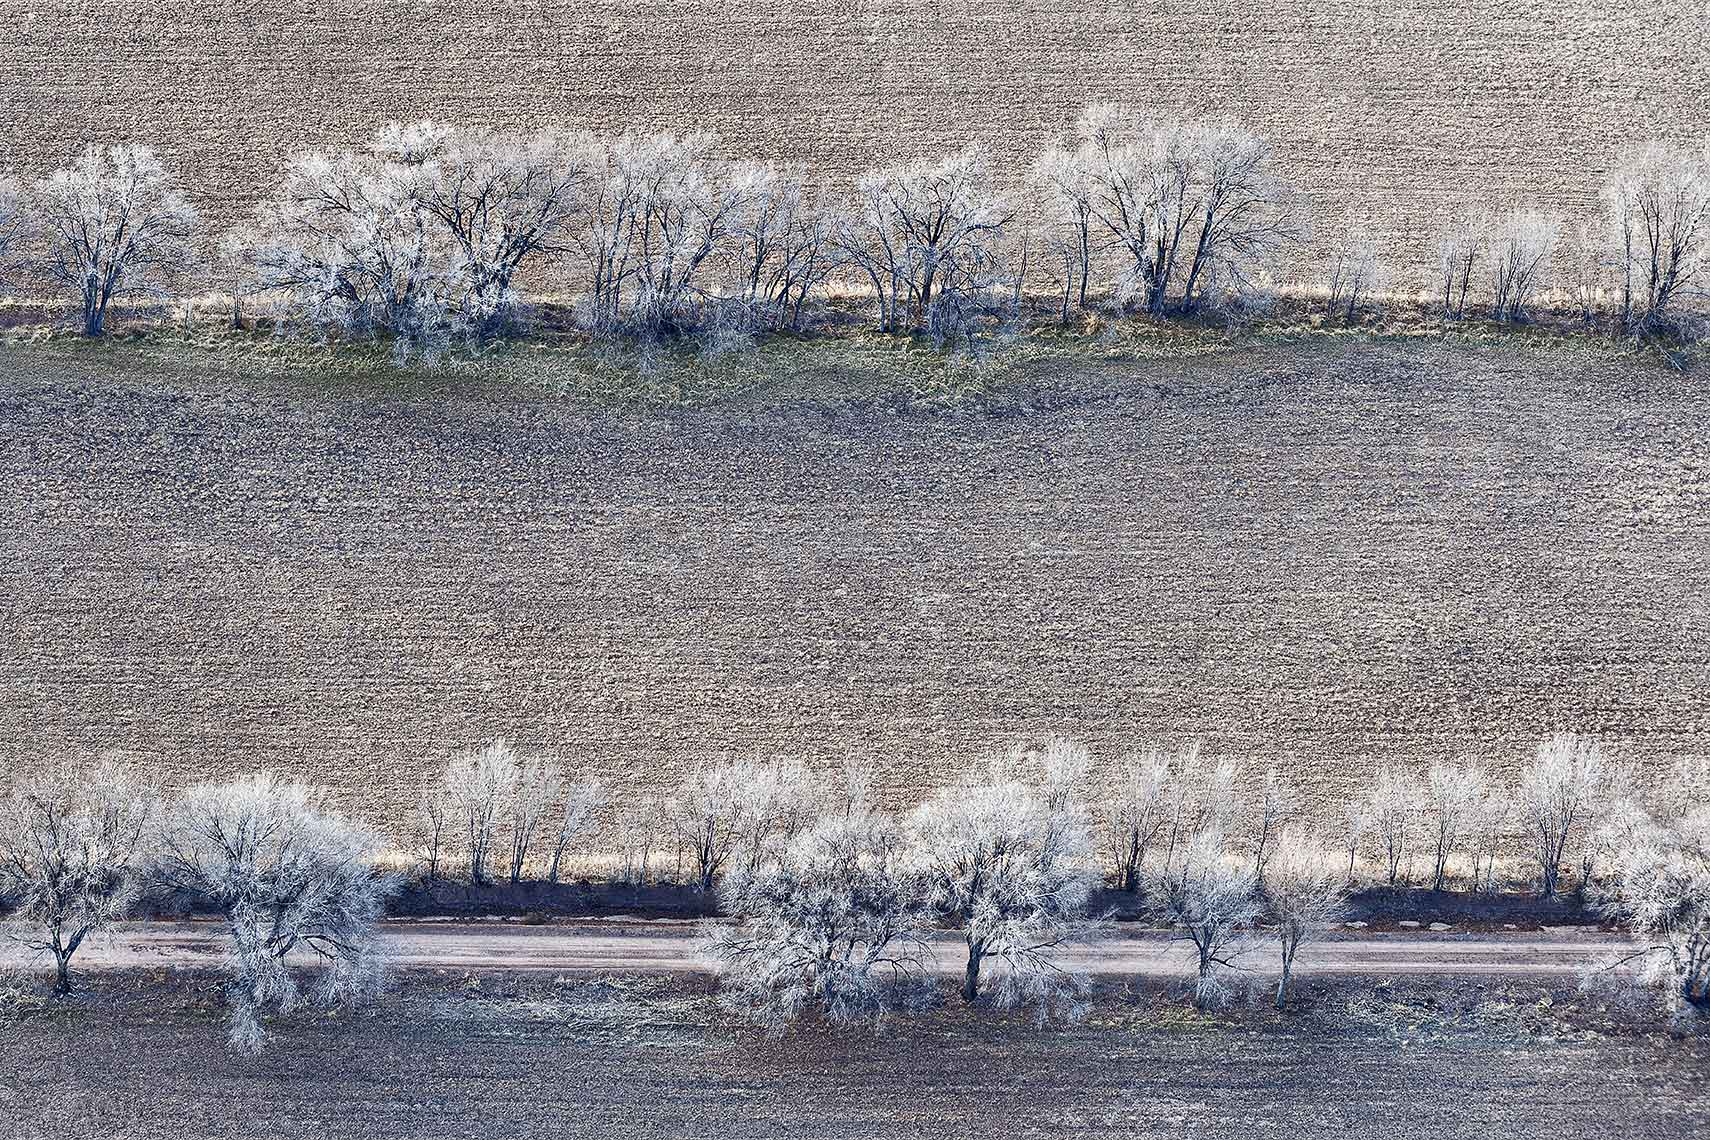 Zoe Wetherall / Aerial Landscape /Line of Trees